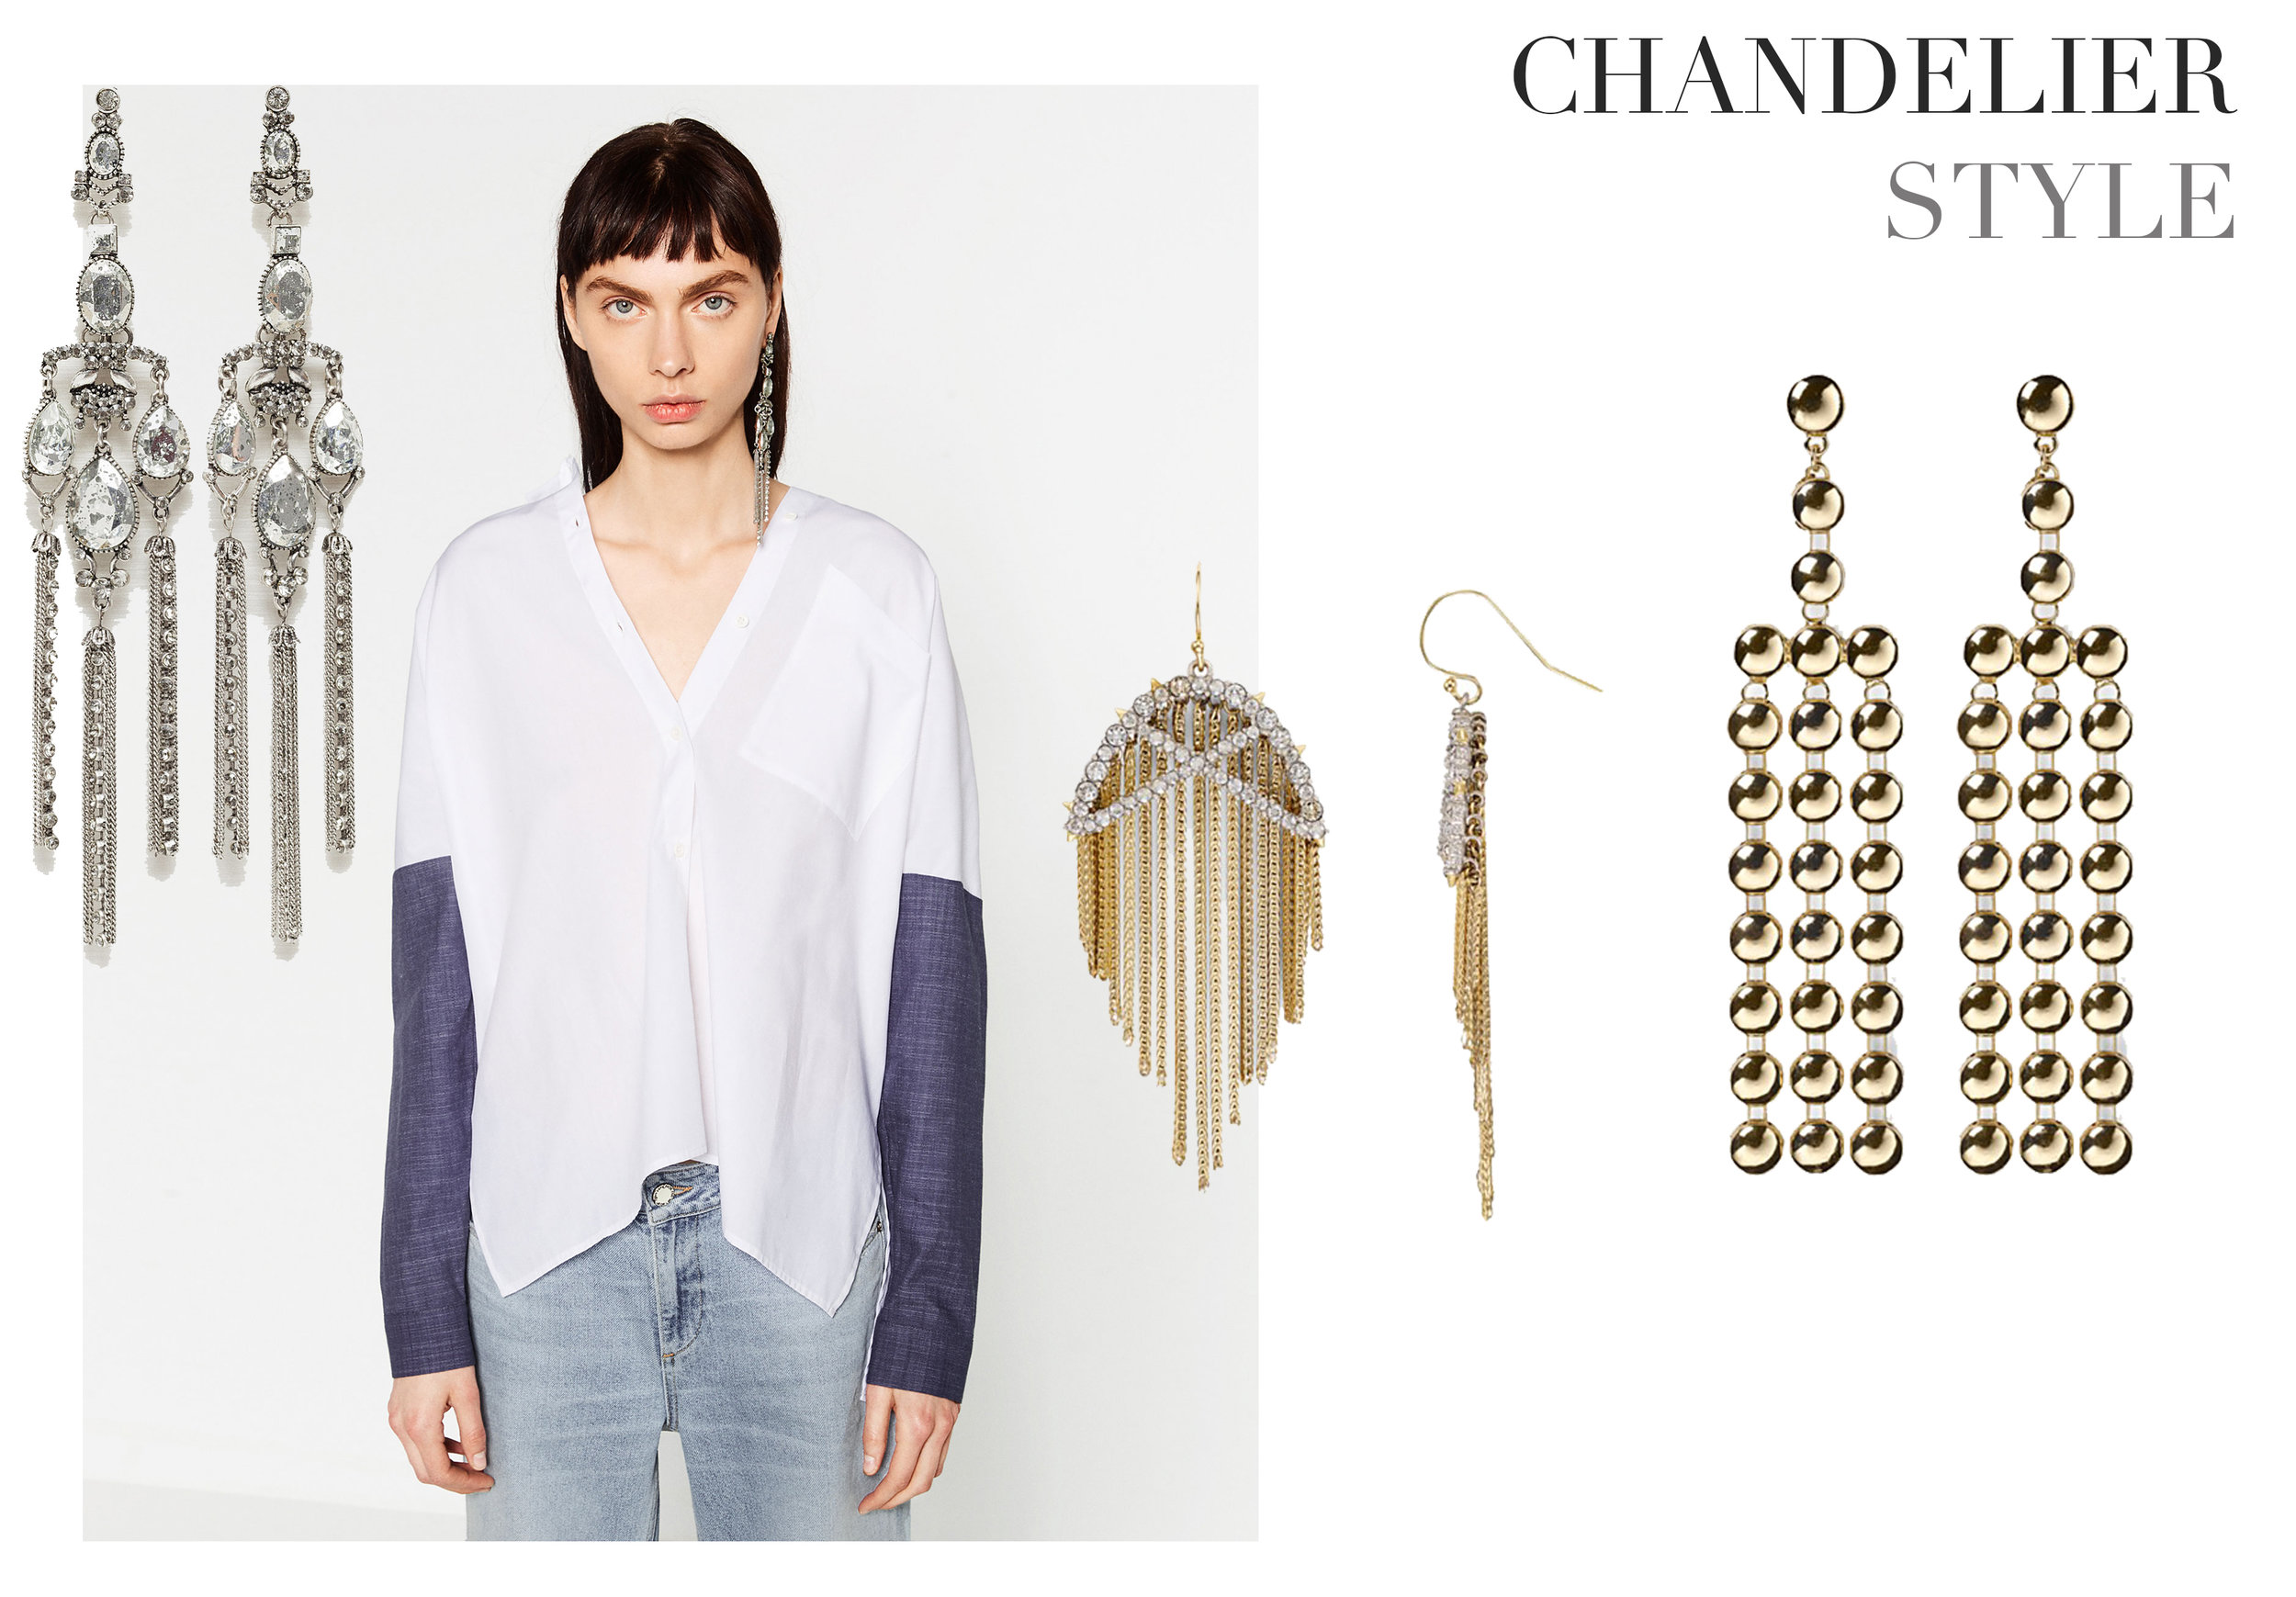 Chandelier earrings are always a great choice and one of my favorite go to looks. A new styling tip: only wear one earring, especially if it's oversized. I saw this on so many of the global Spring 2017 Designer runway shows, and thought it was a cool new styling option.        Bloomingdales Gold Drop Earrings    Alexis Bittar Gold and Rhinestone Drop Earrings    Zara Long Silver Earrings